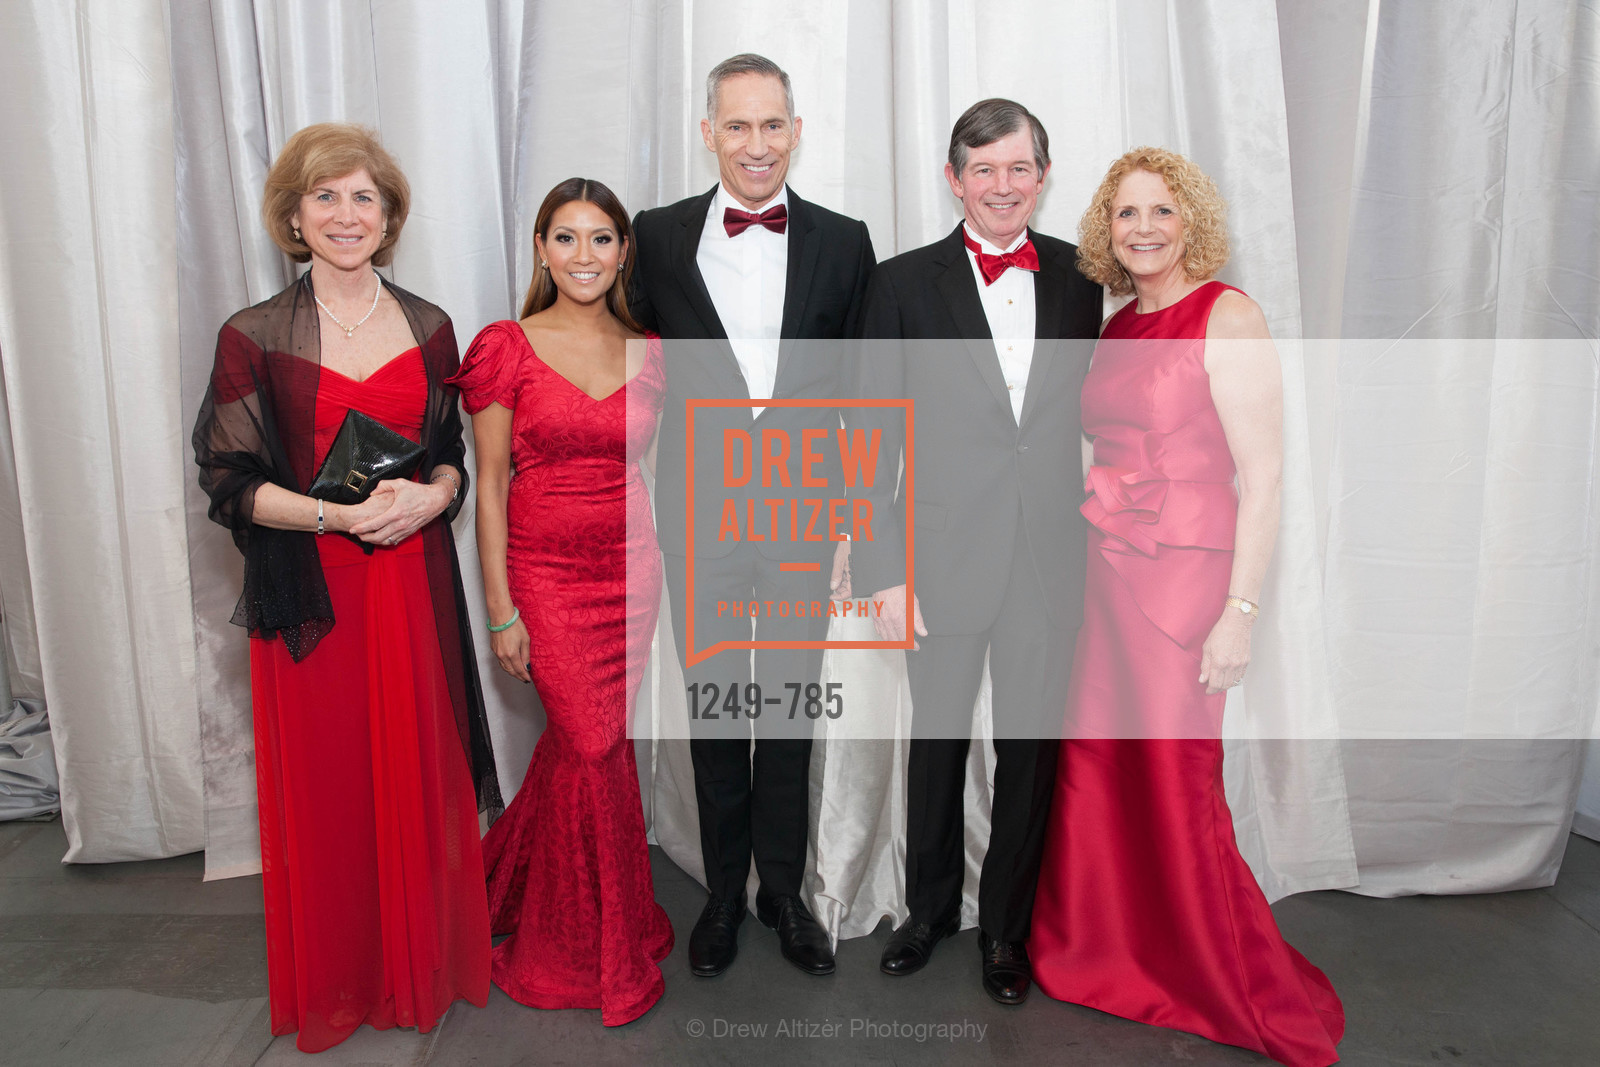 Gail McGovern, Lillian Phan, Mark Cloutier, Anthony Earley, Sarah Earley, 2015 RED CROSS Gala, US, April 12th, 2015,Drew Altizer, Drew Altizer Photography, full-service agency, private events, San Francisco photographer, photographer california